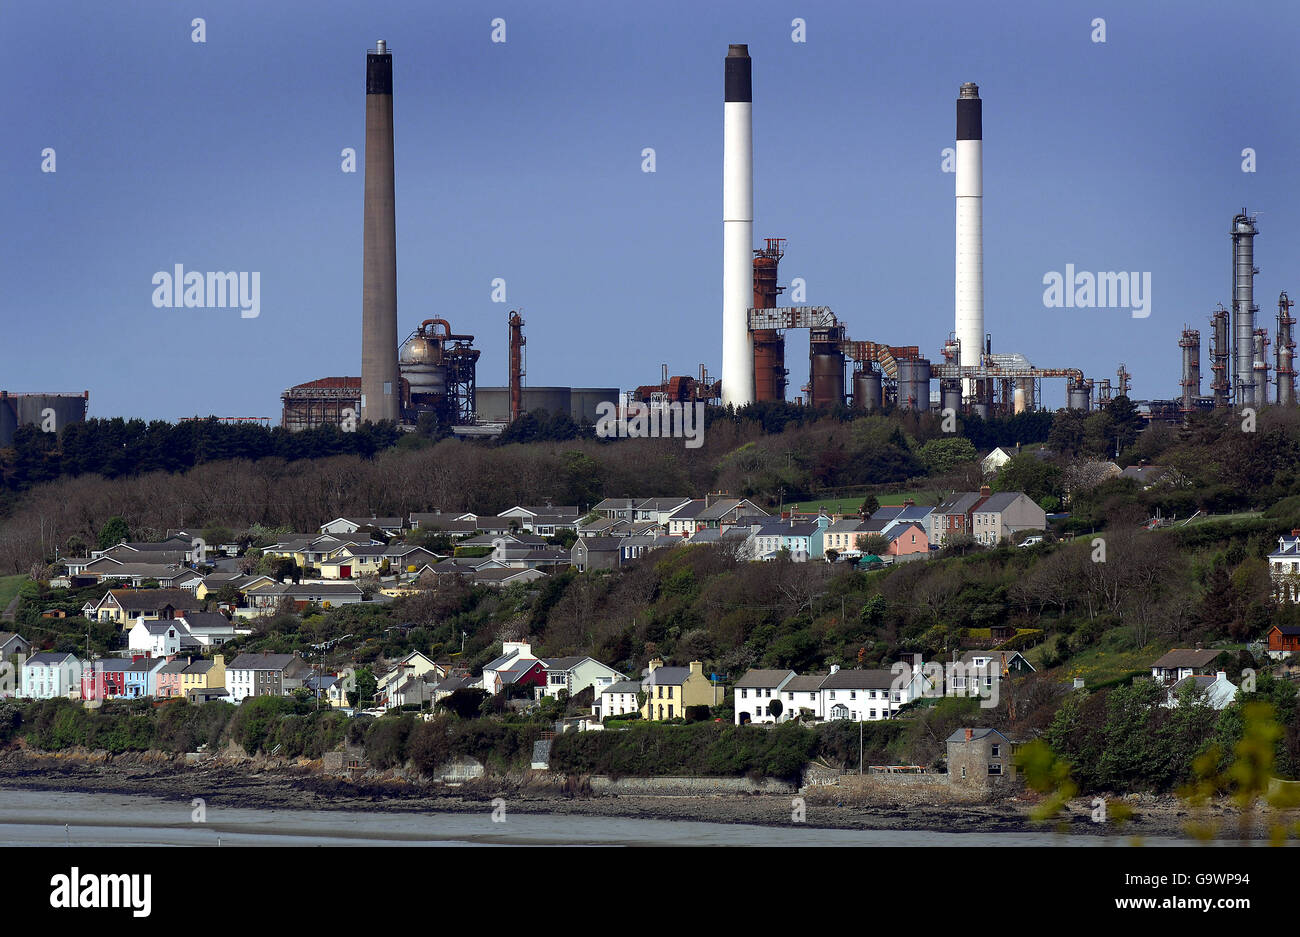 Buildings and Landmarks - LNG installation - Milford Haven Stock Photo